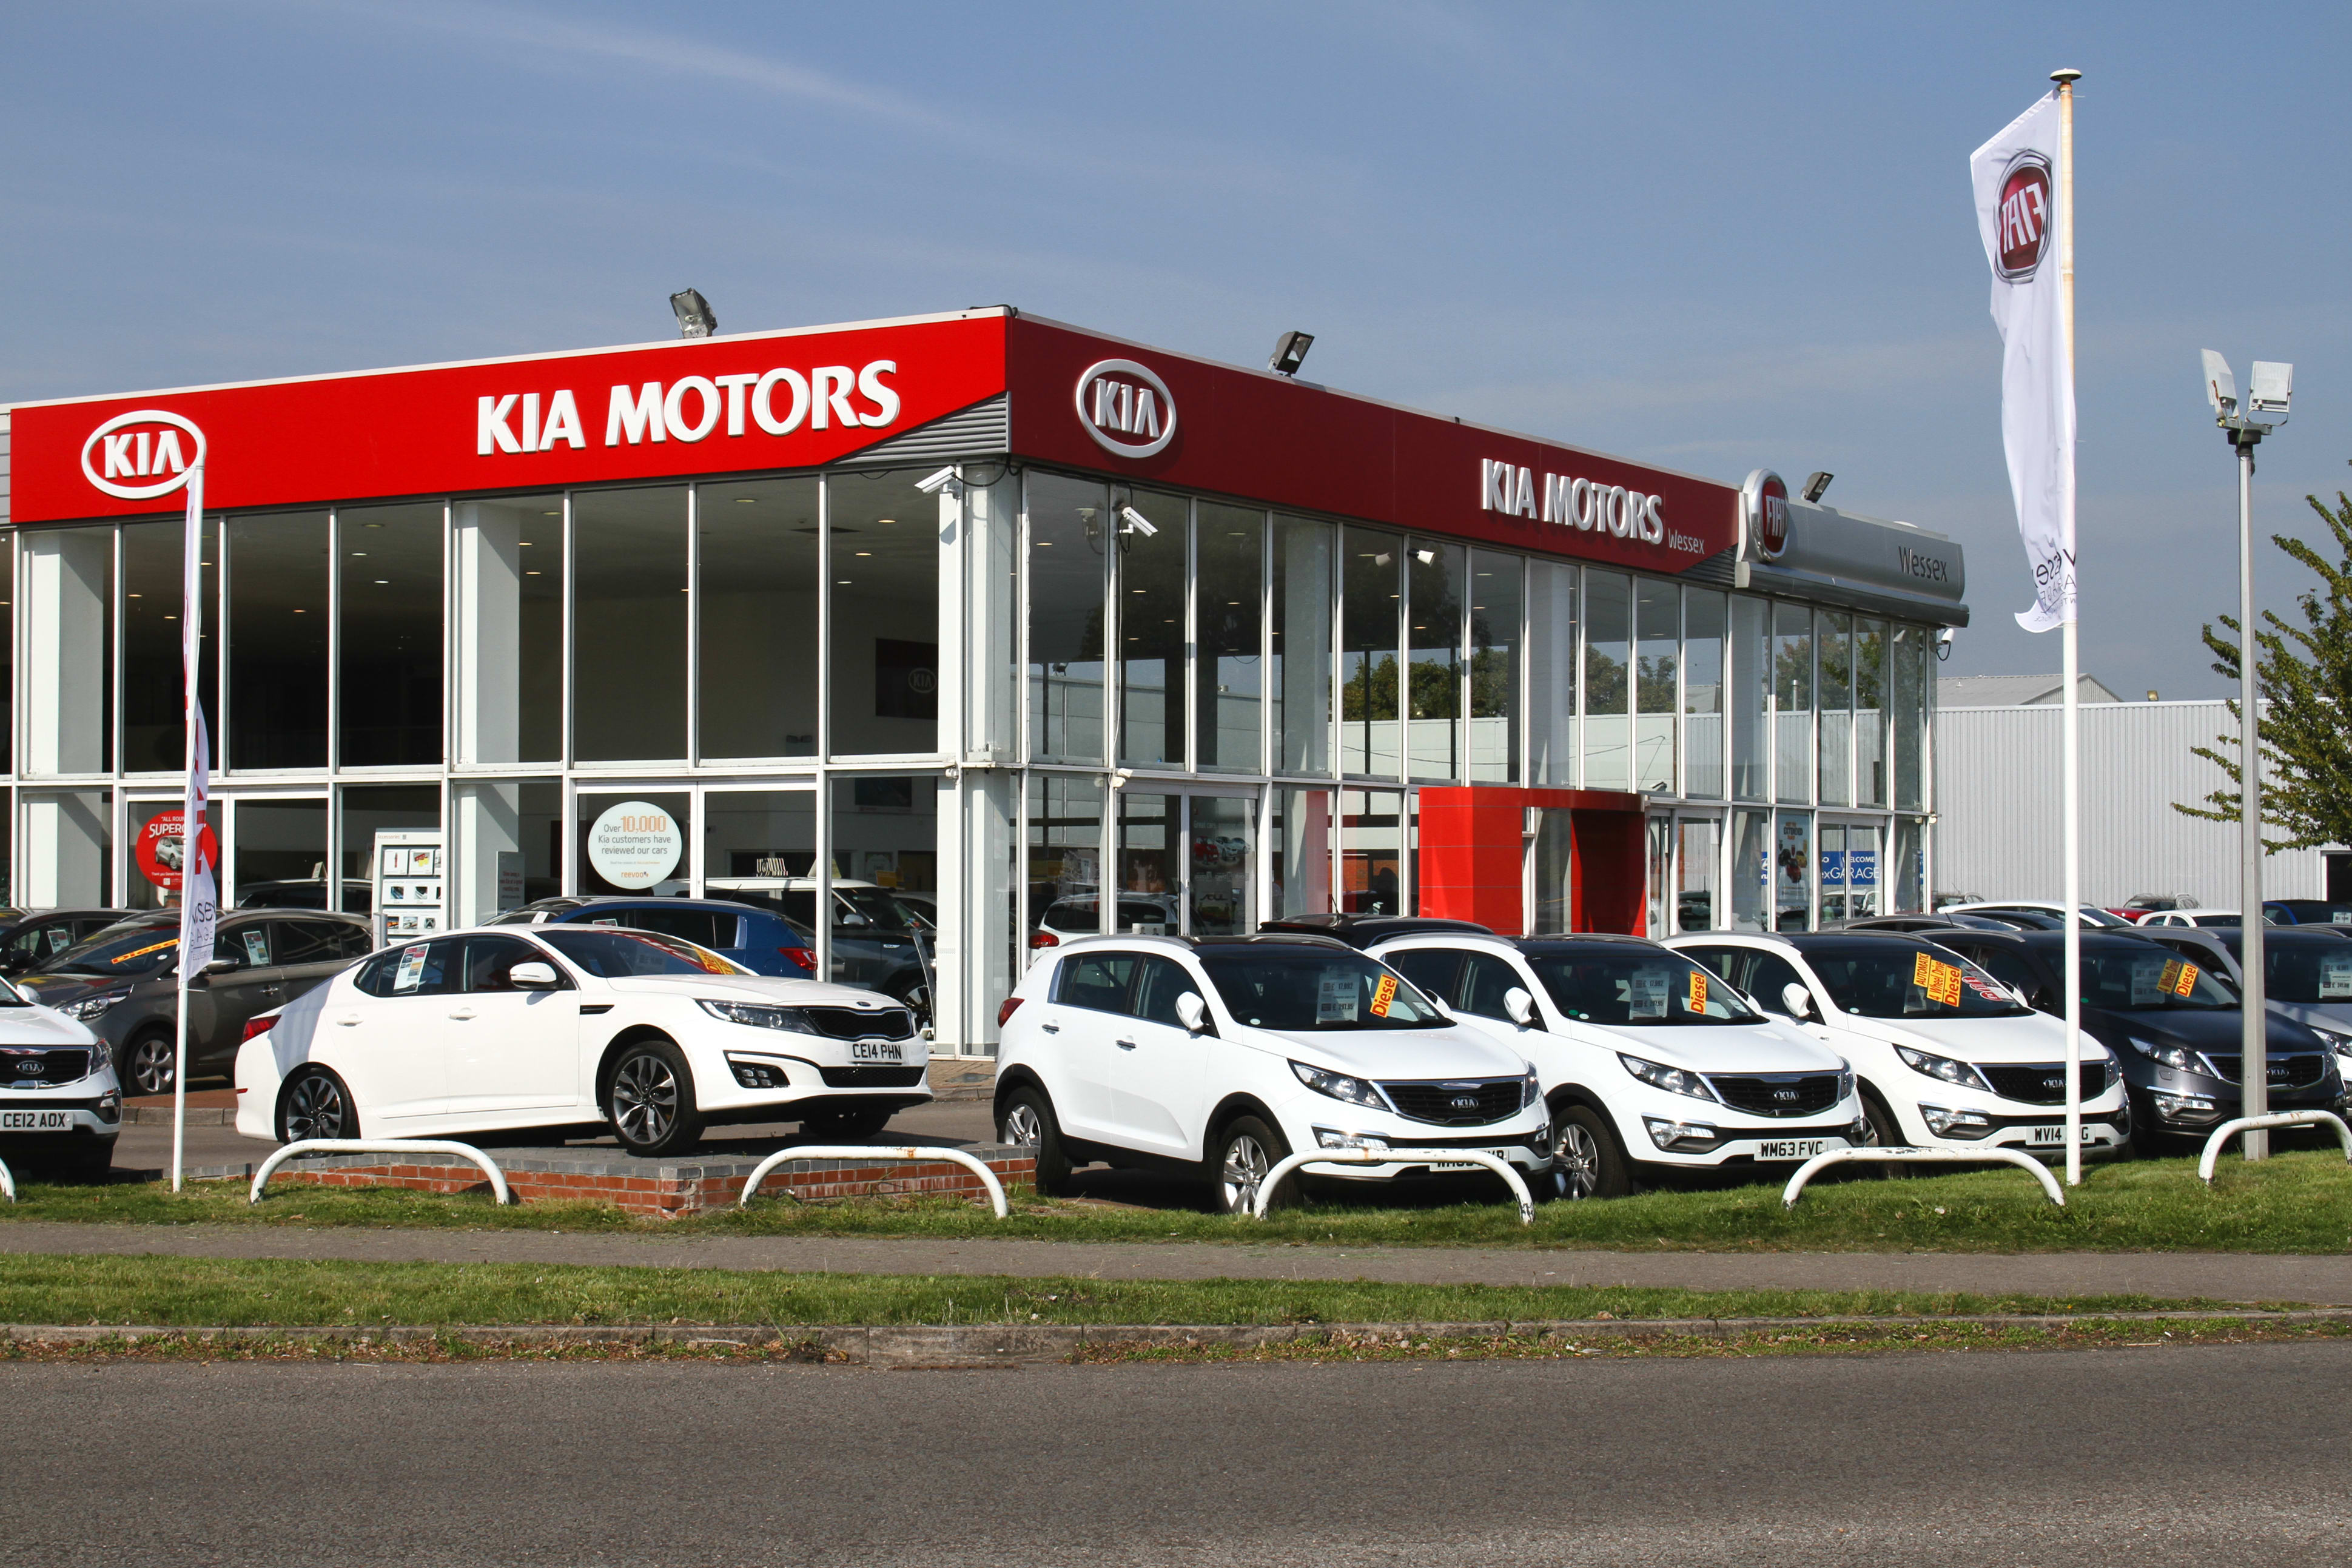 mouths soul dealership writes product bad location apology near kia ev letter lies anti sell sells my dealer manager k